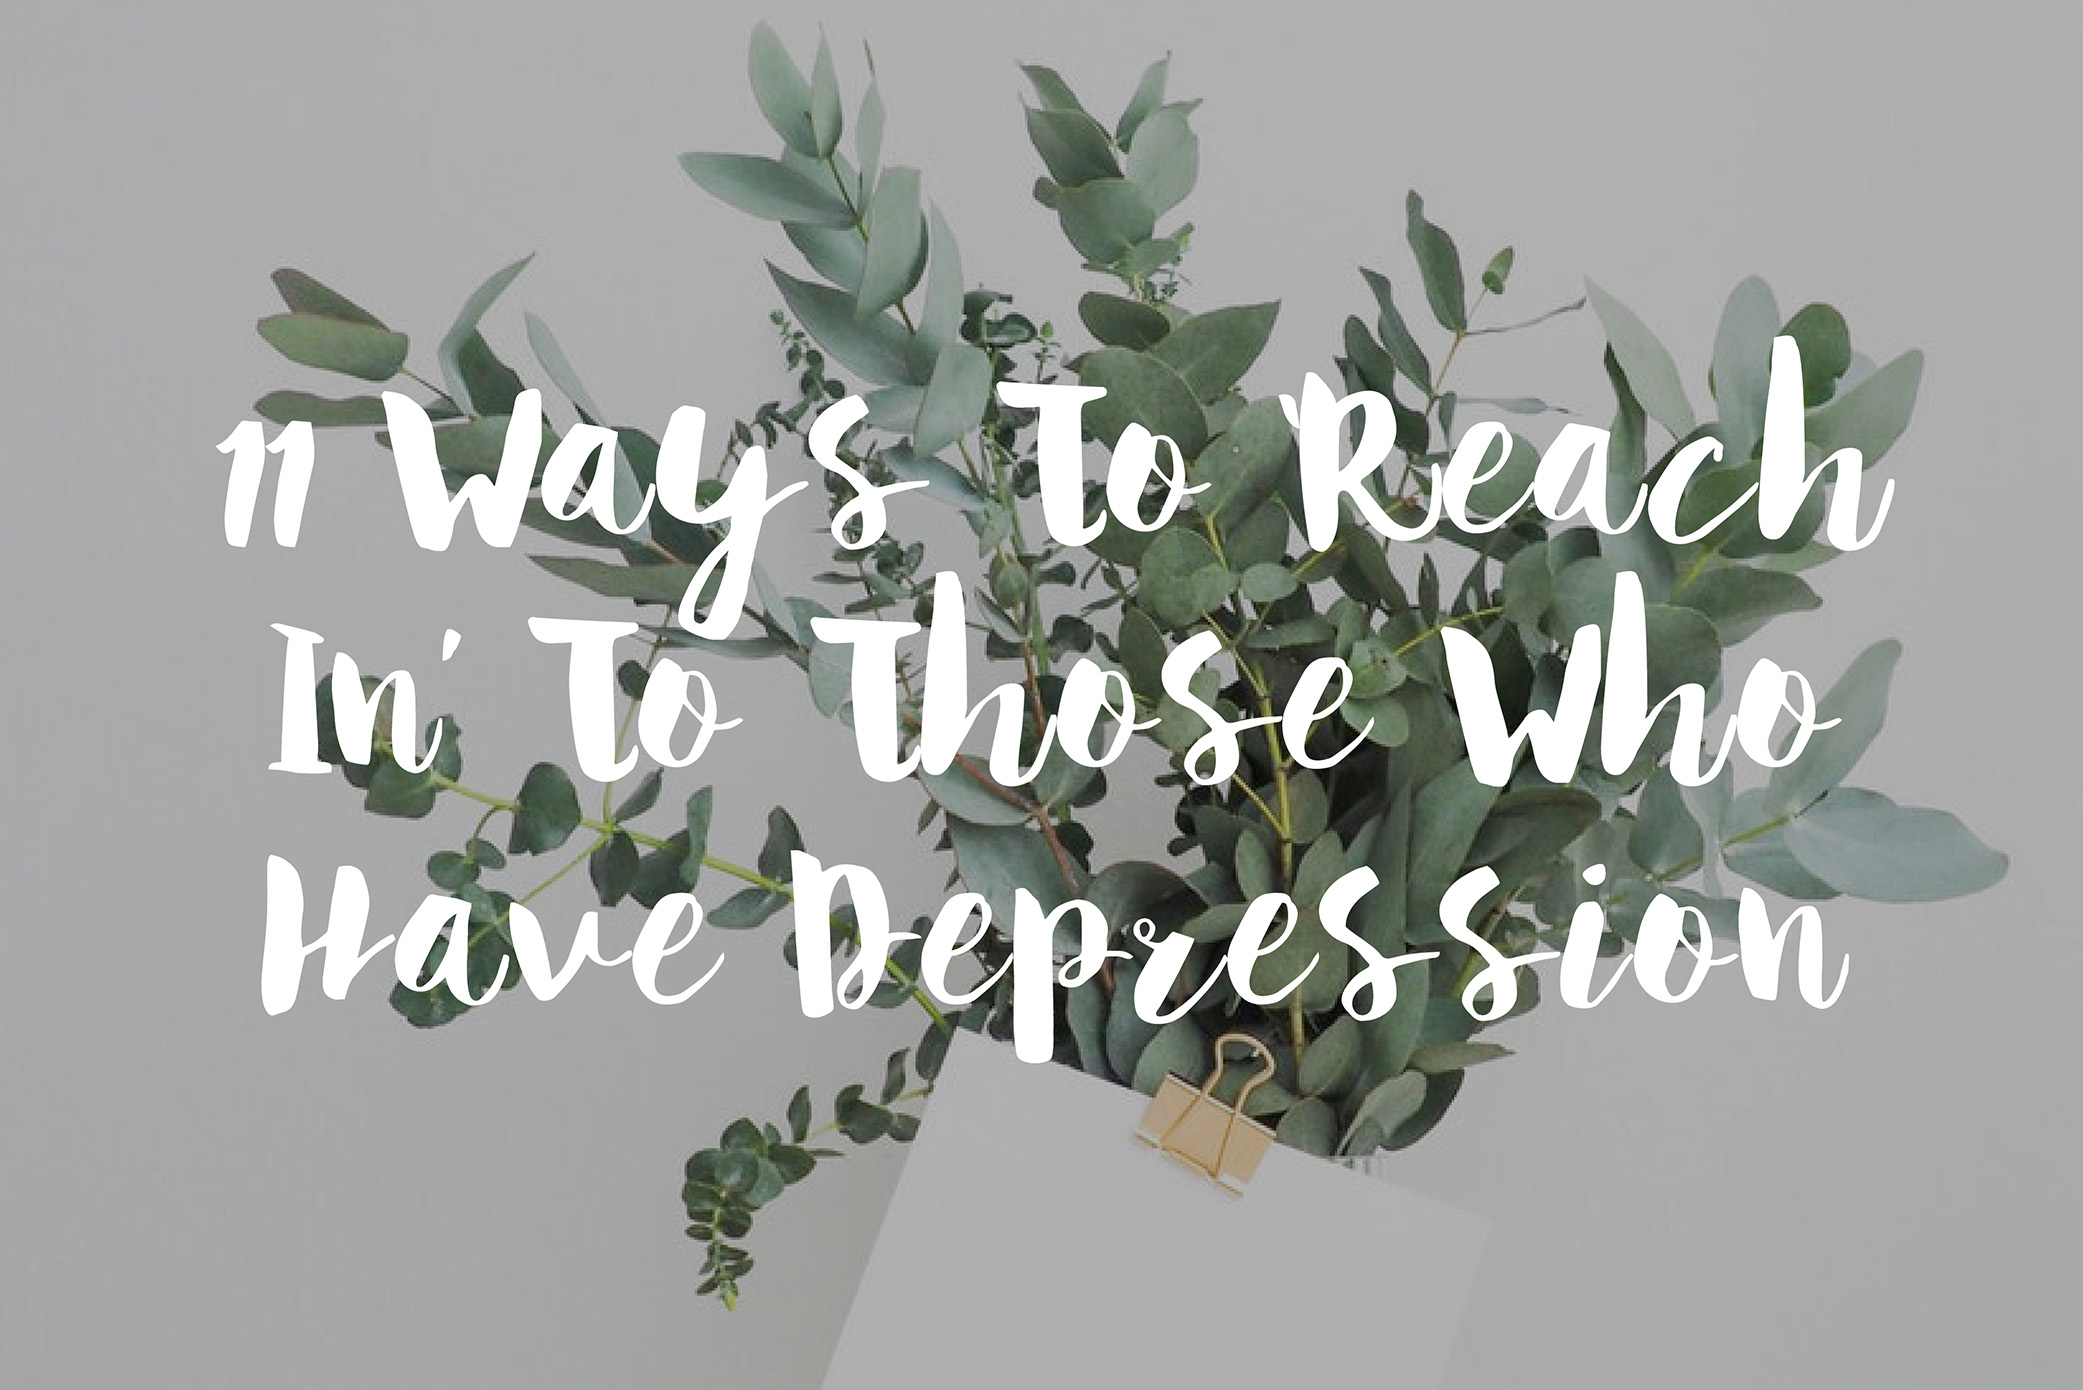 11 Ways To Reach In To Those Who Have Depression